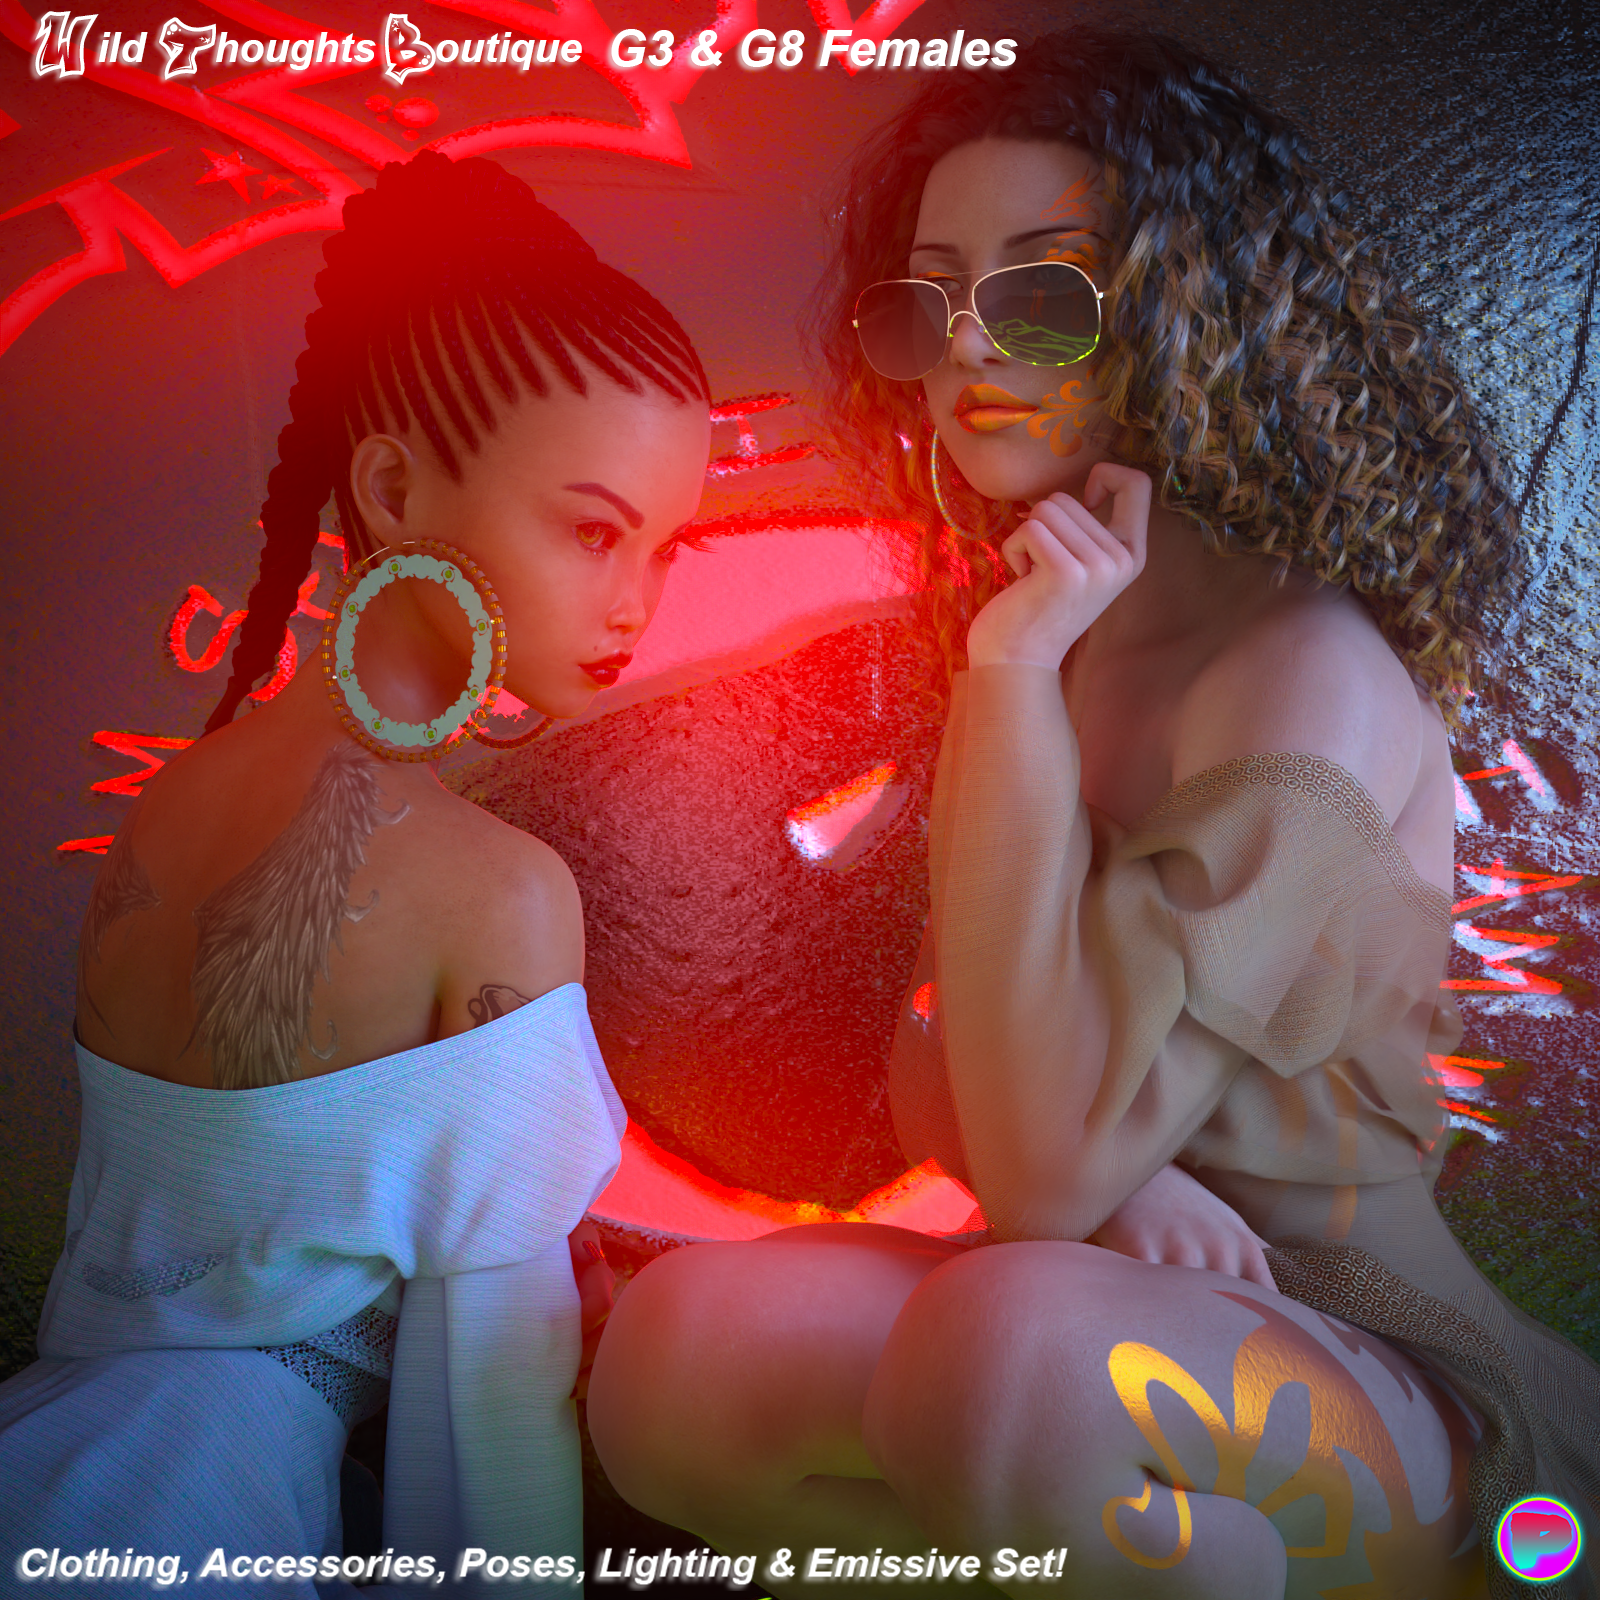 Wild Thoughts For G3 and G8 Females by Parallax3DArt